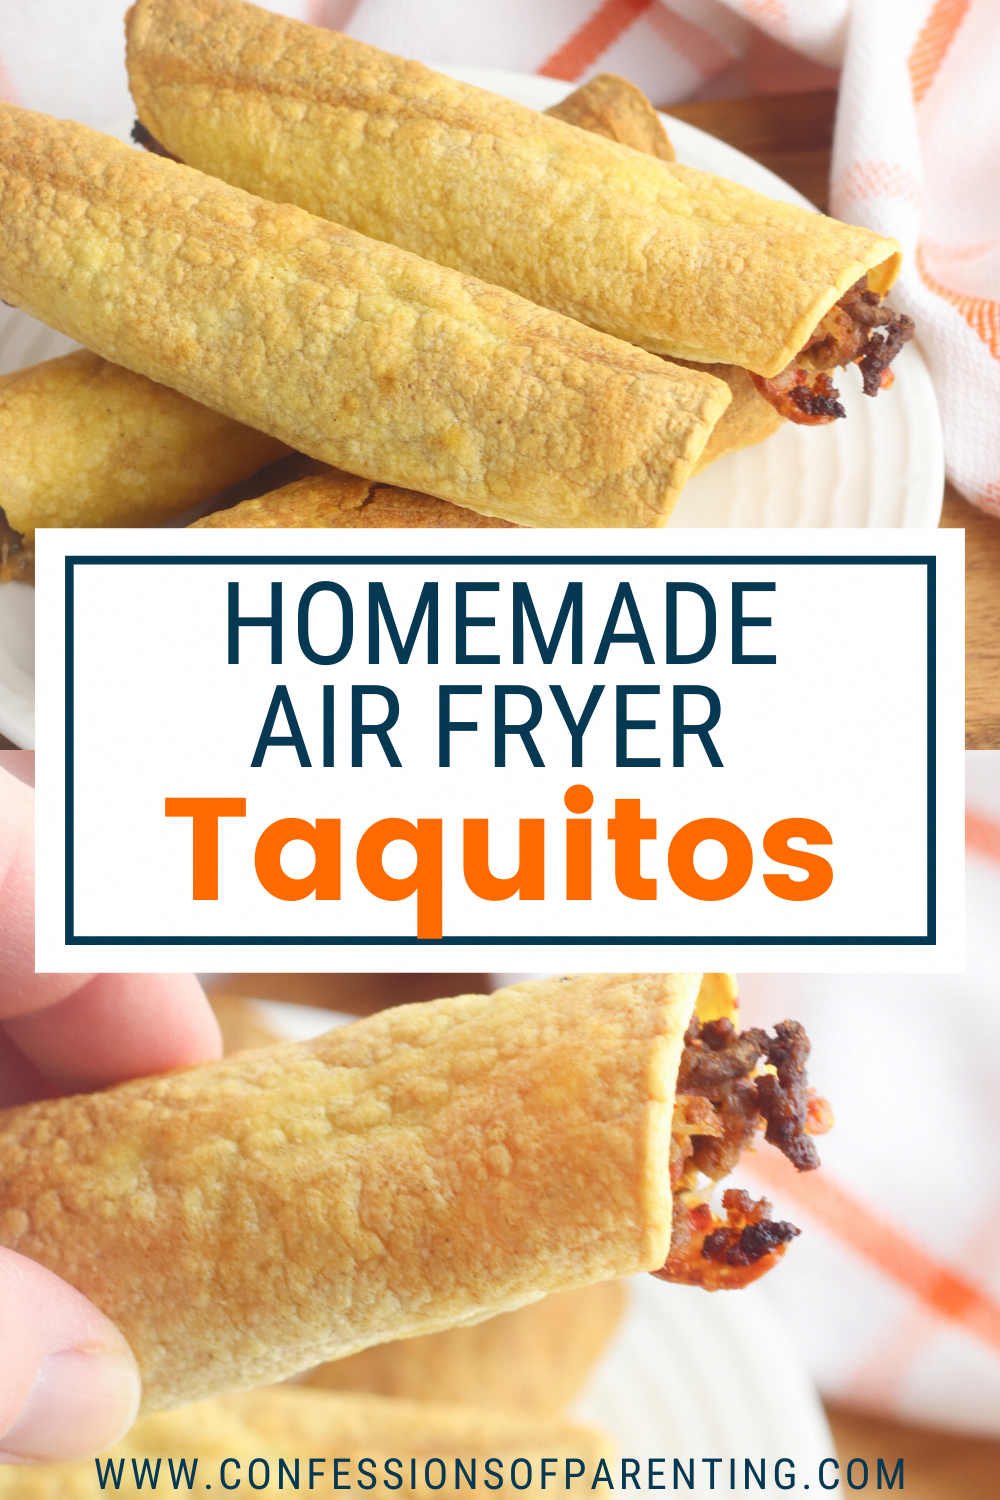 Homemade Air Fryer Taquitos in 2020 Air fryer dinner